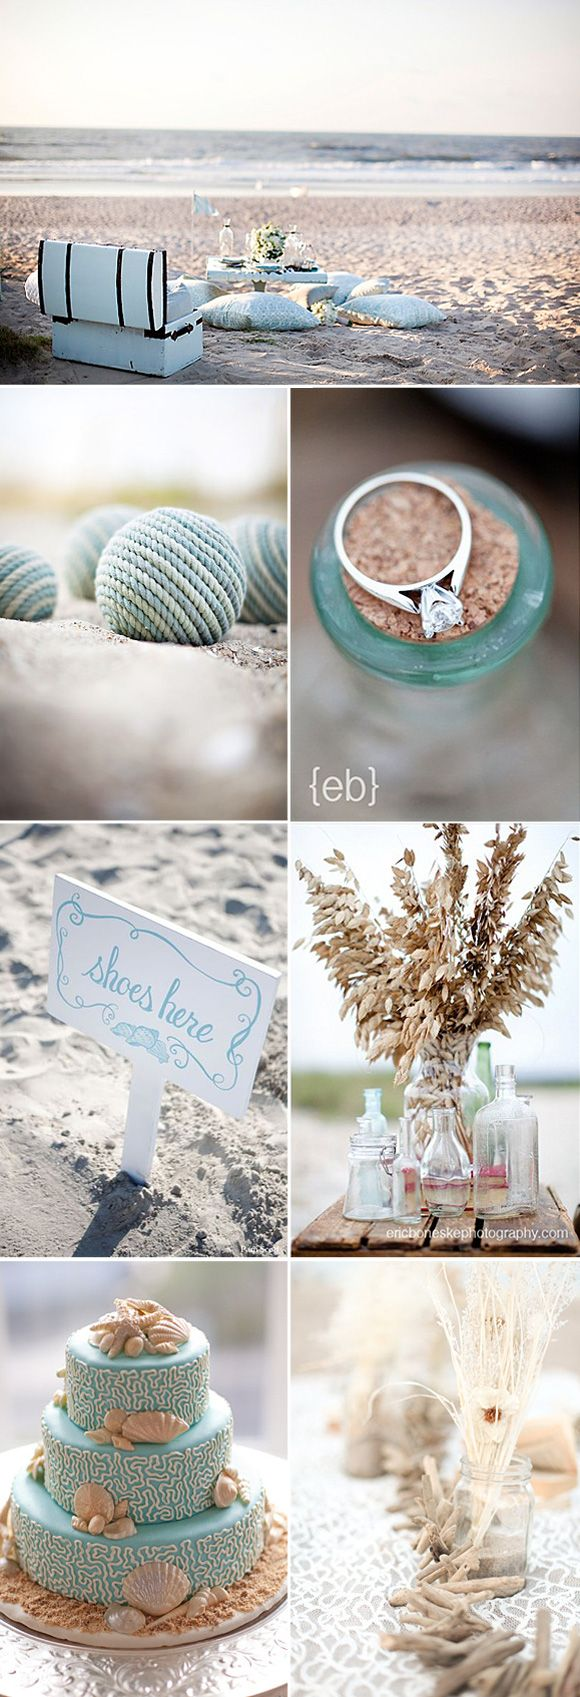 bodas en la playa ideas para decorar